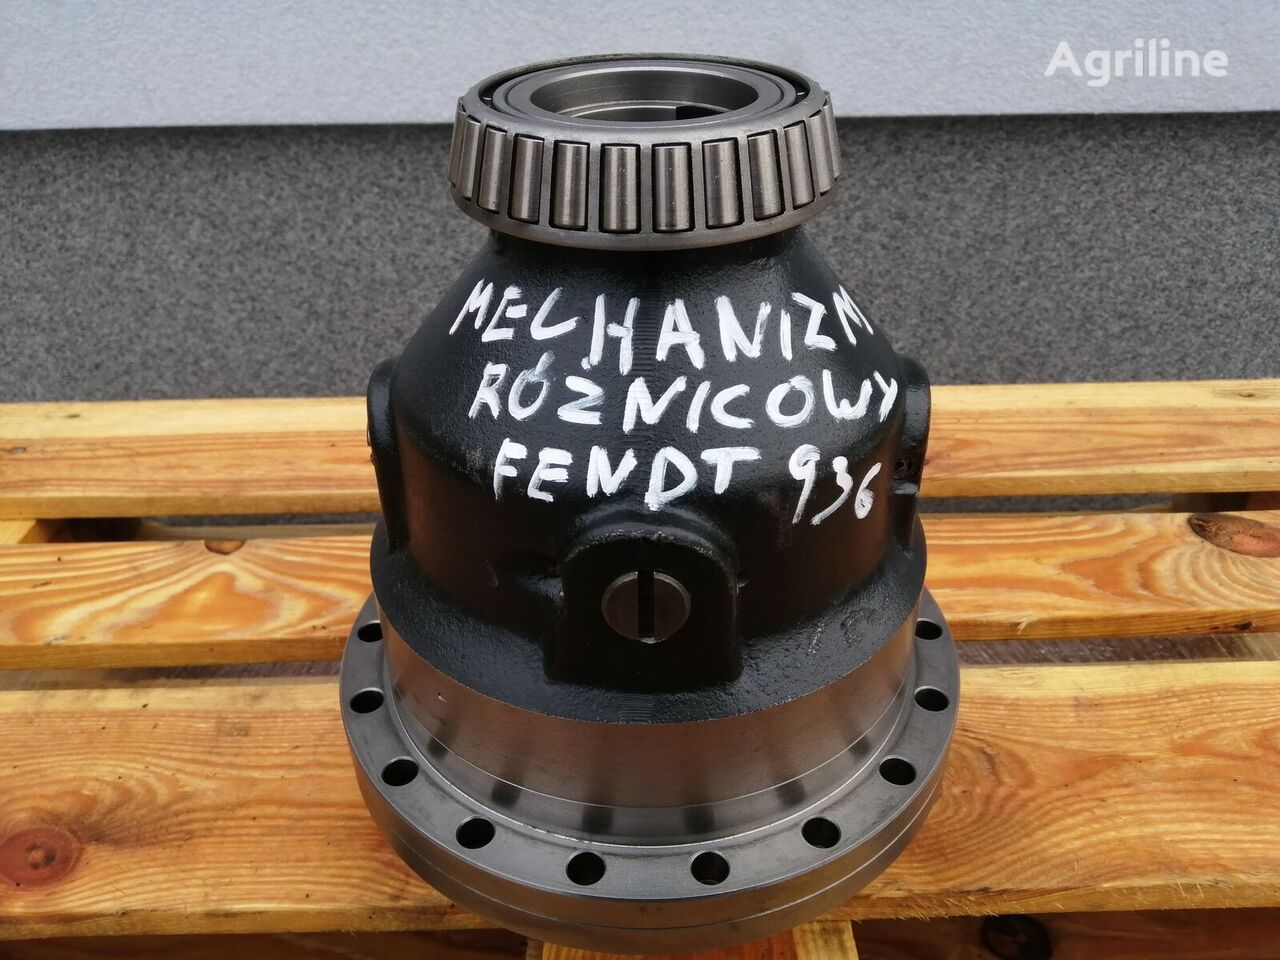 Mechanizm różnicowy Fendt 936 Vario differential for tractor